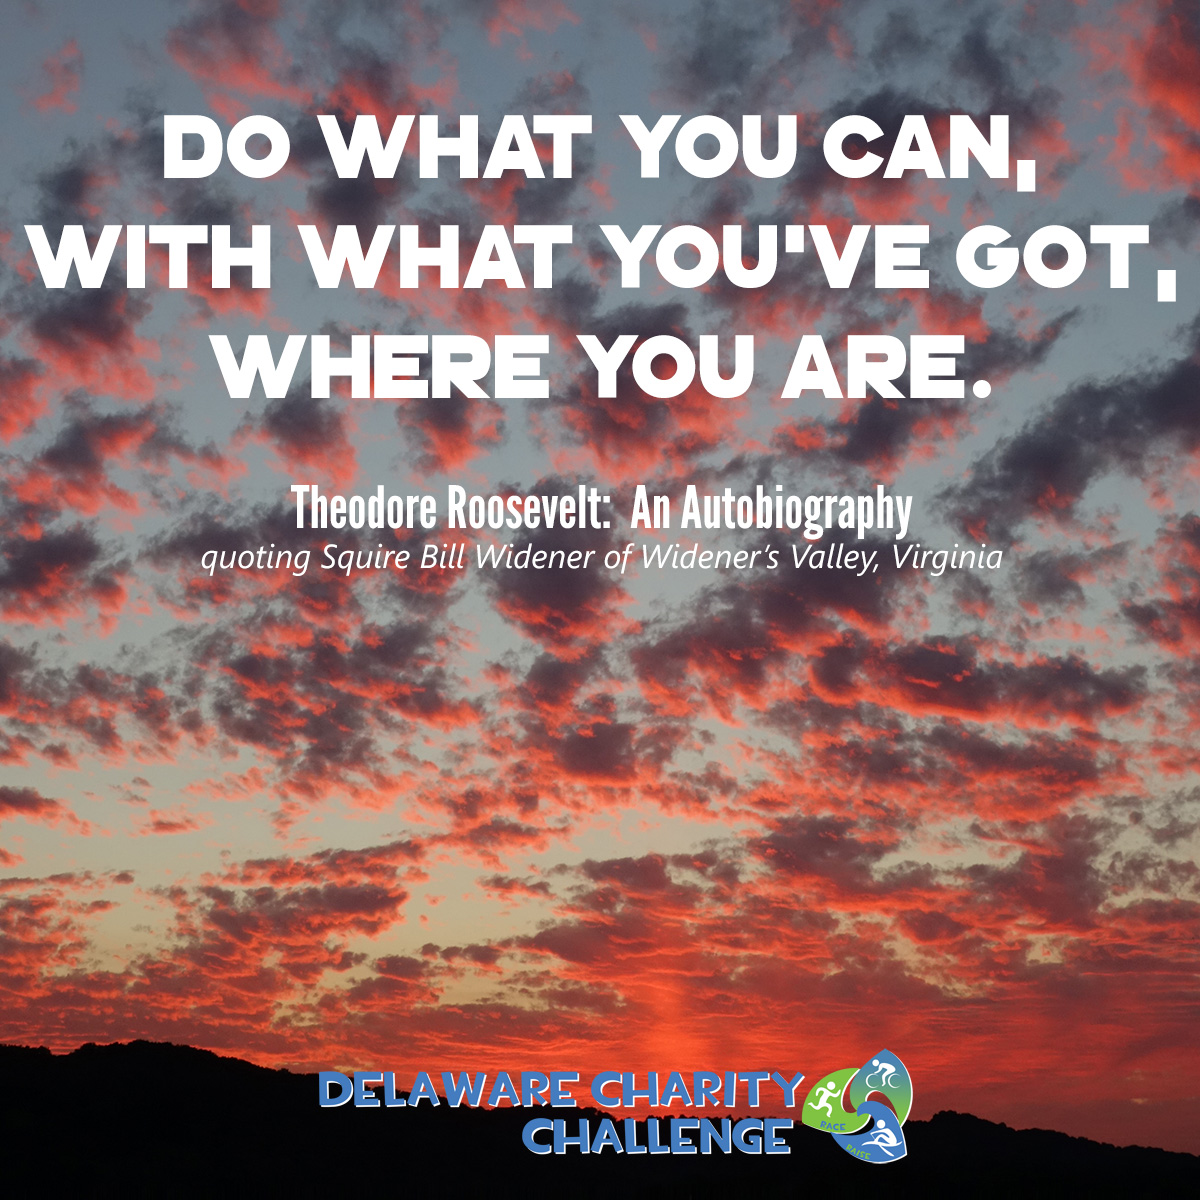 """The """"Do what you can, with what you've got, where you are"""" quote is widely attributed to Theodore Roosevelt, but actually was quoted by Theodore Roosevelt in his autobiography.  See  Sue Brewton,  Squire Bill Widener vs. Theodore Roosevelt , Sue Brewton's Blog (Dec. 31, 2014),  available at   suebrewton.com/tag/do-what-you-can-with-what-you-have-where-you-are ."""